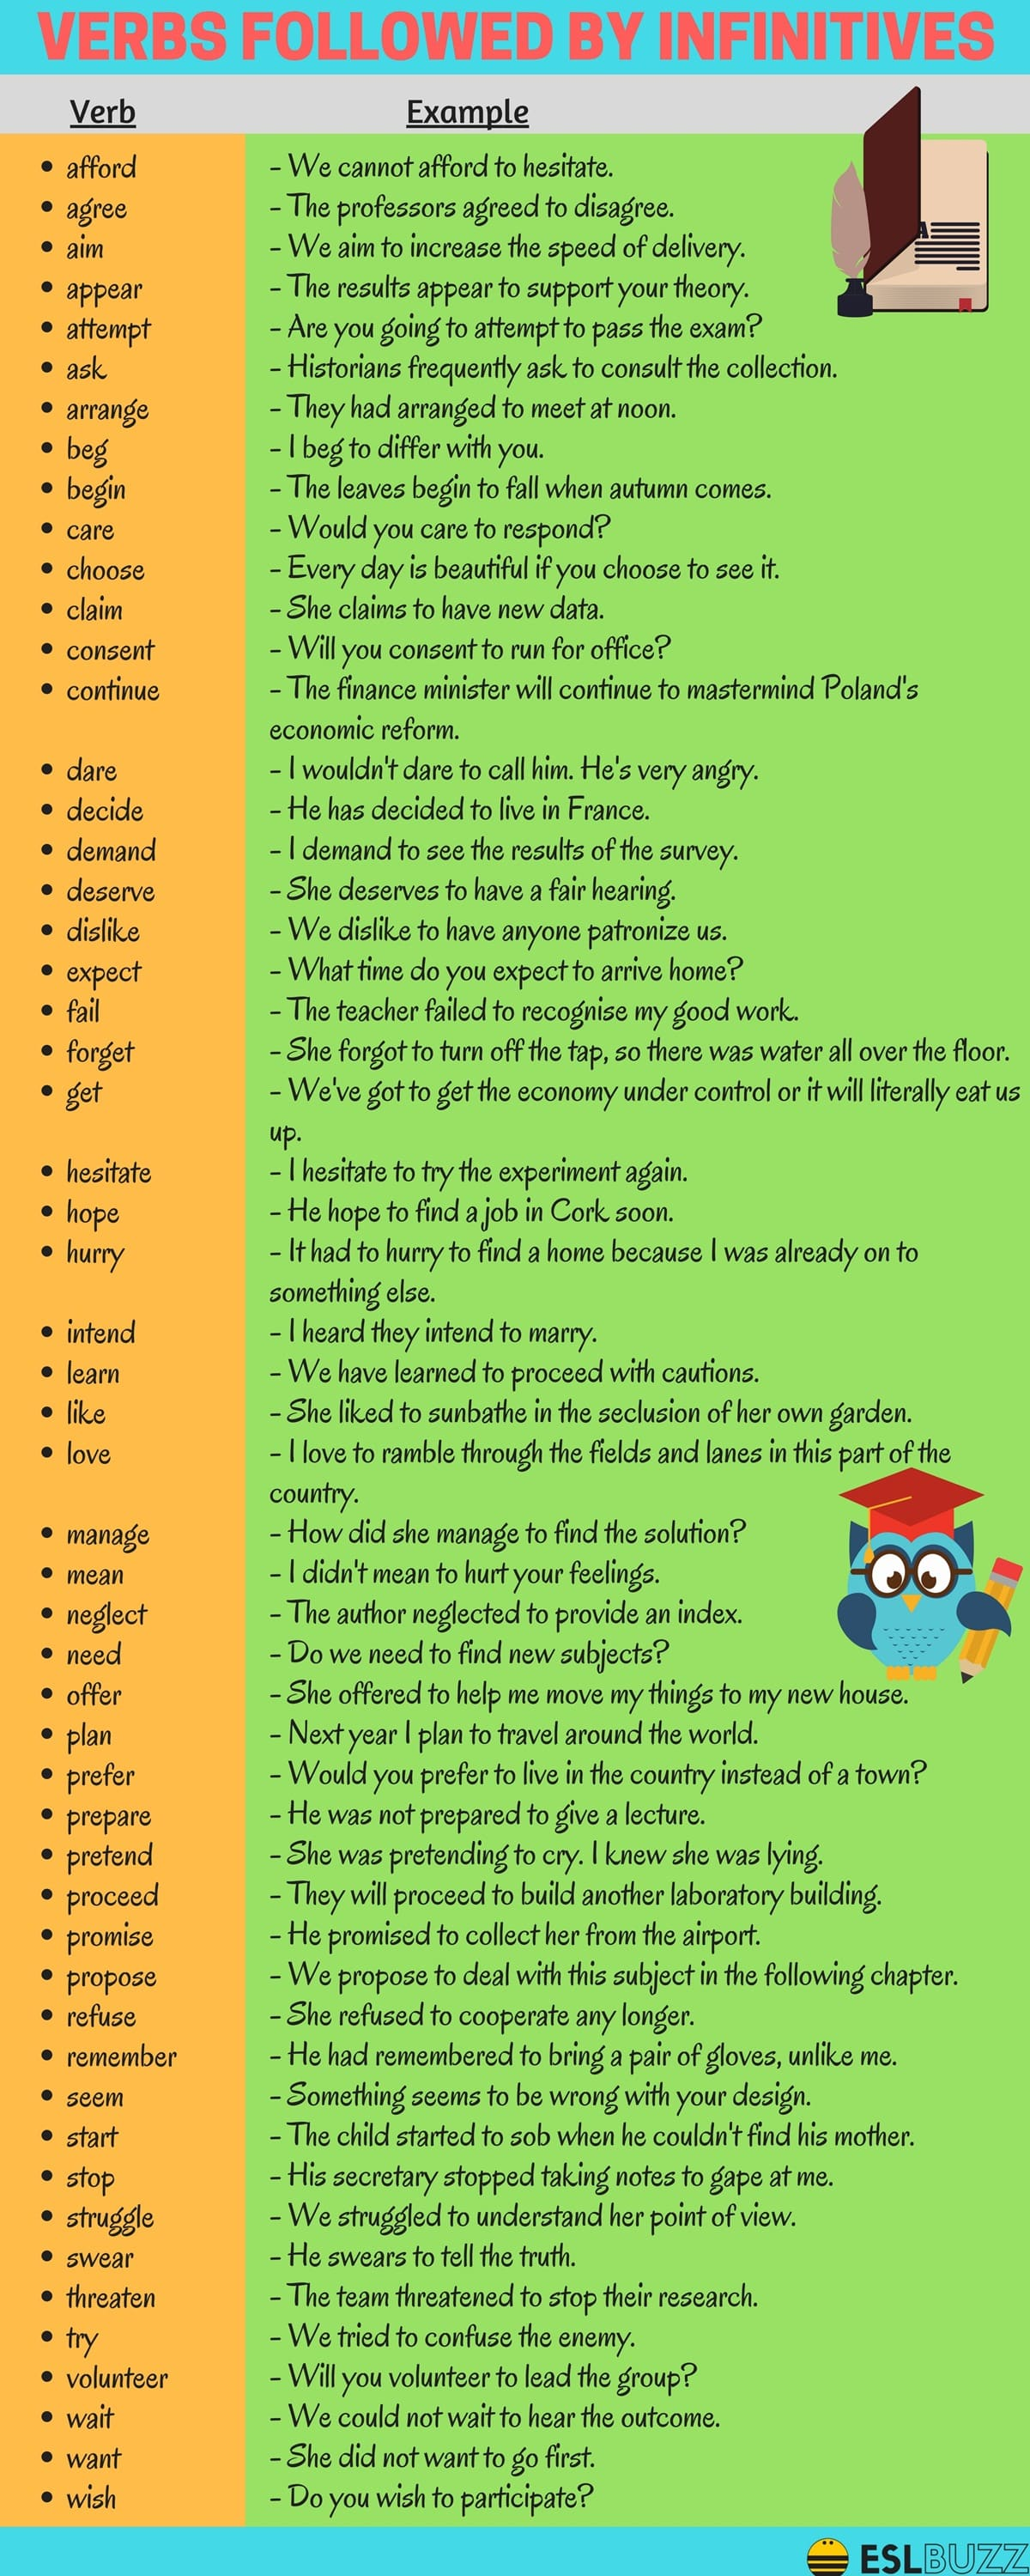 Infinitives: List of 50+ Verbs Followed by Infinitives in English